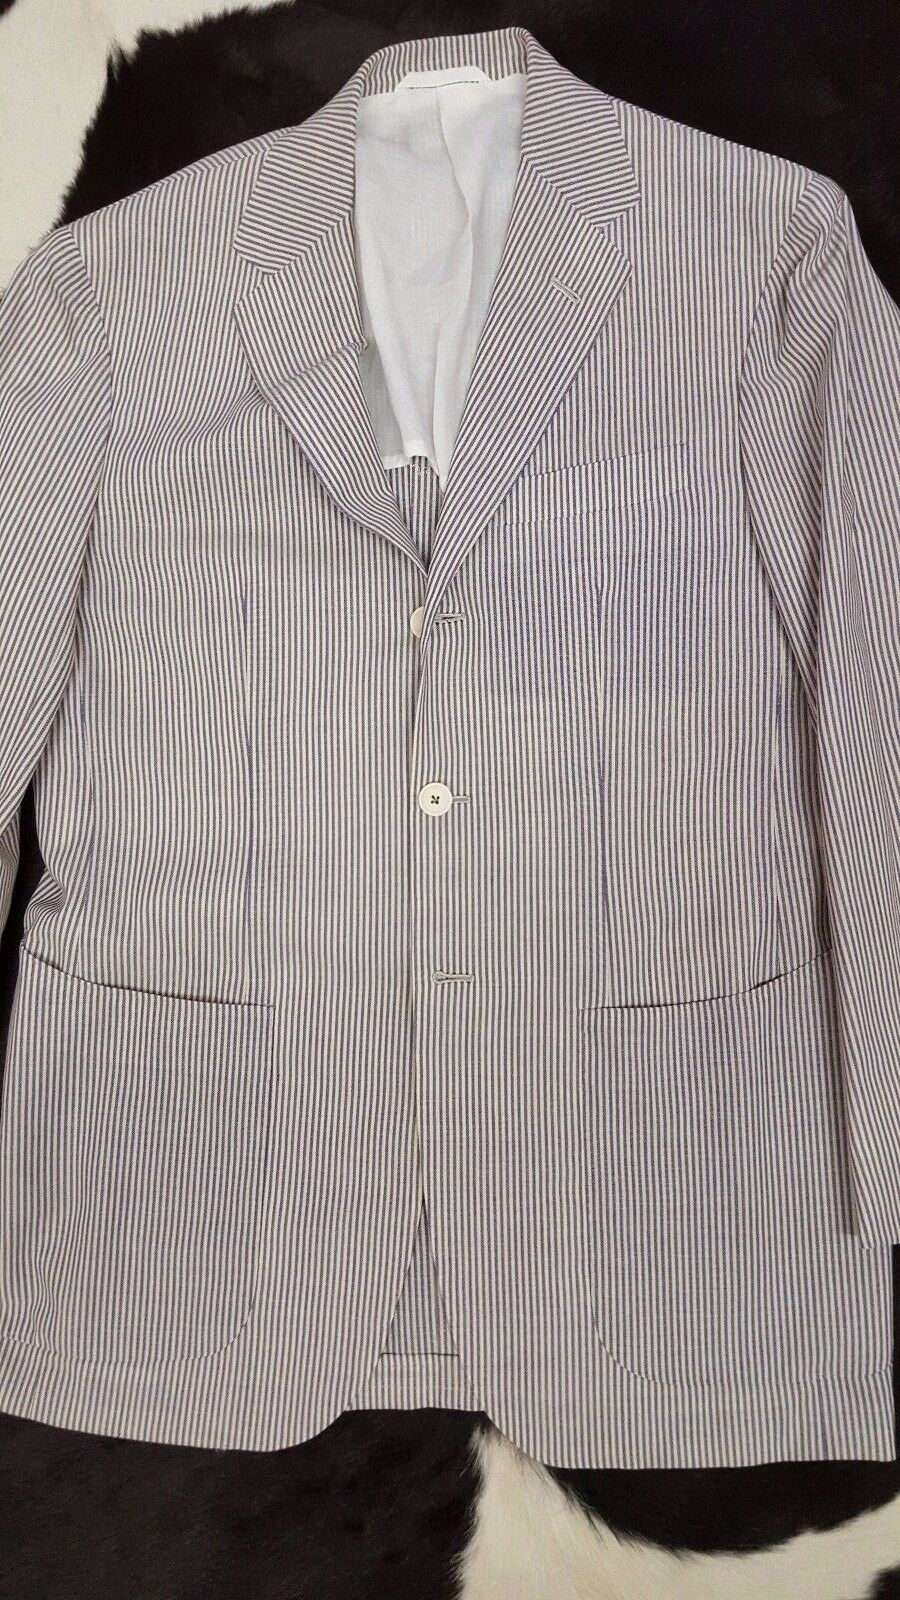 NWT  SARTORIO BY KITON BLAZER 38 40 FULL CANVAS HAND MADE DECONST striped